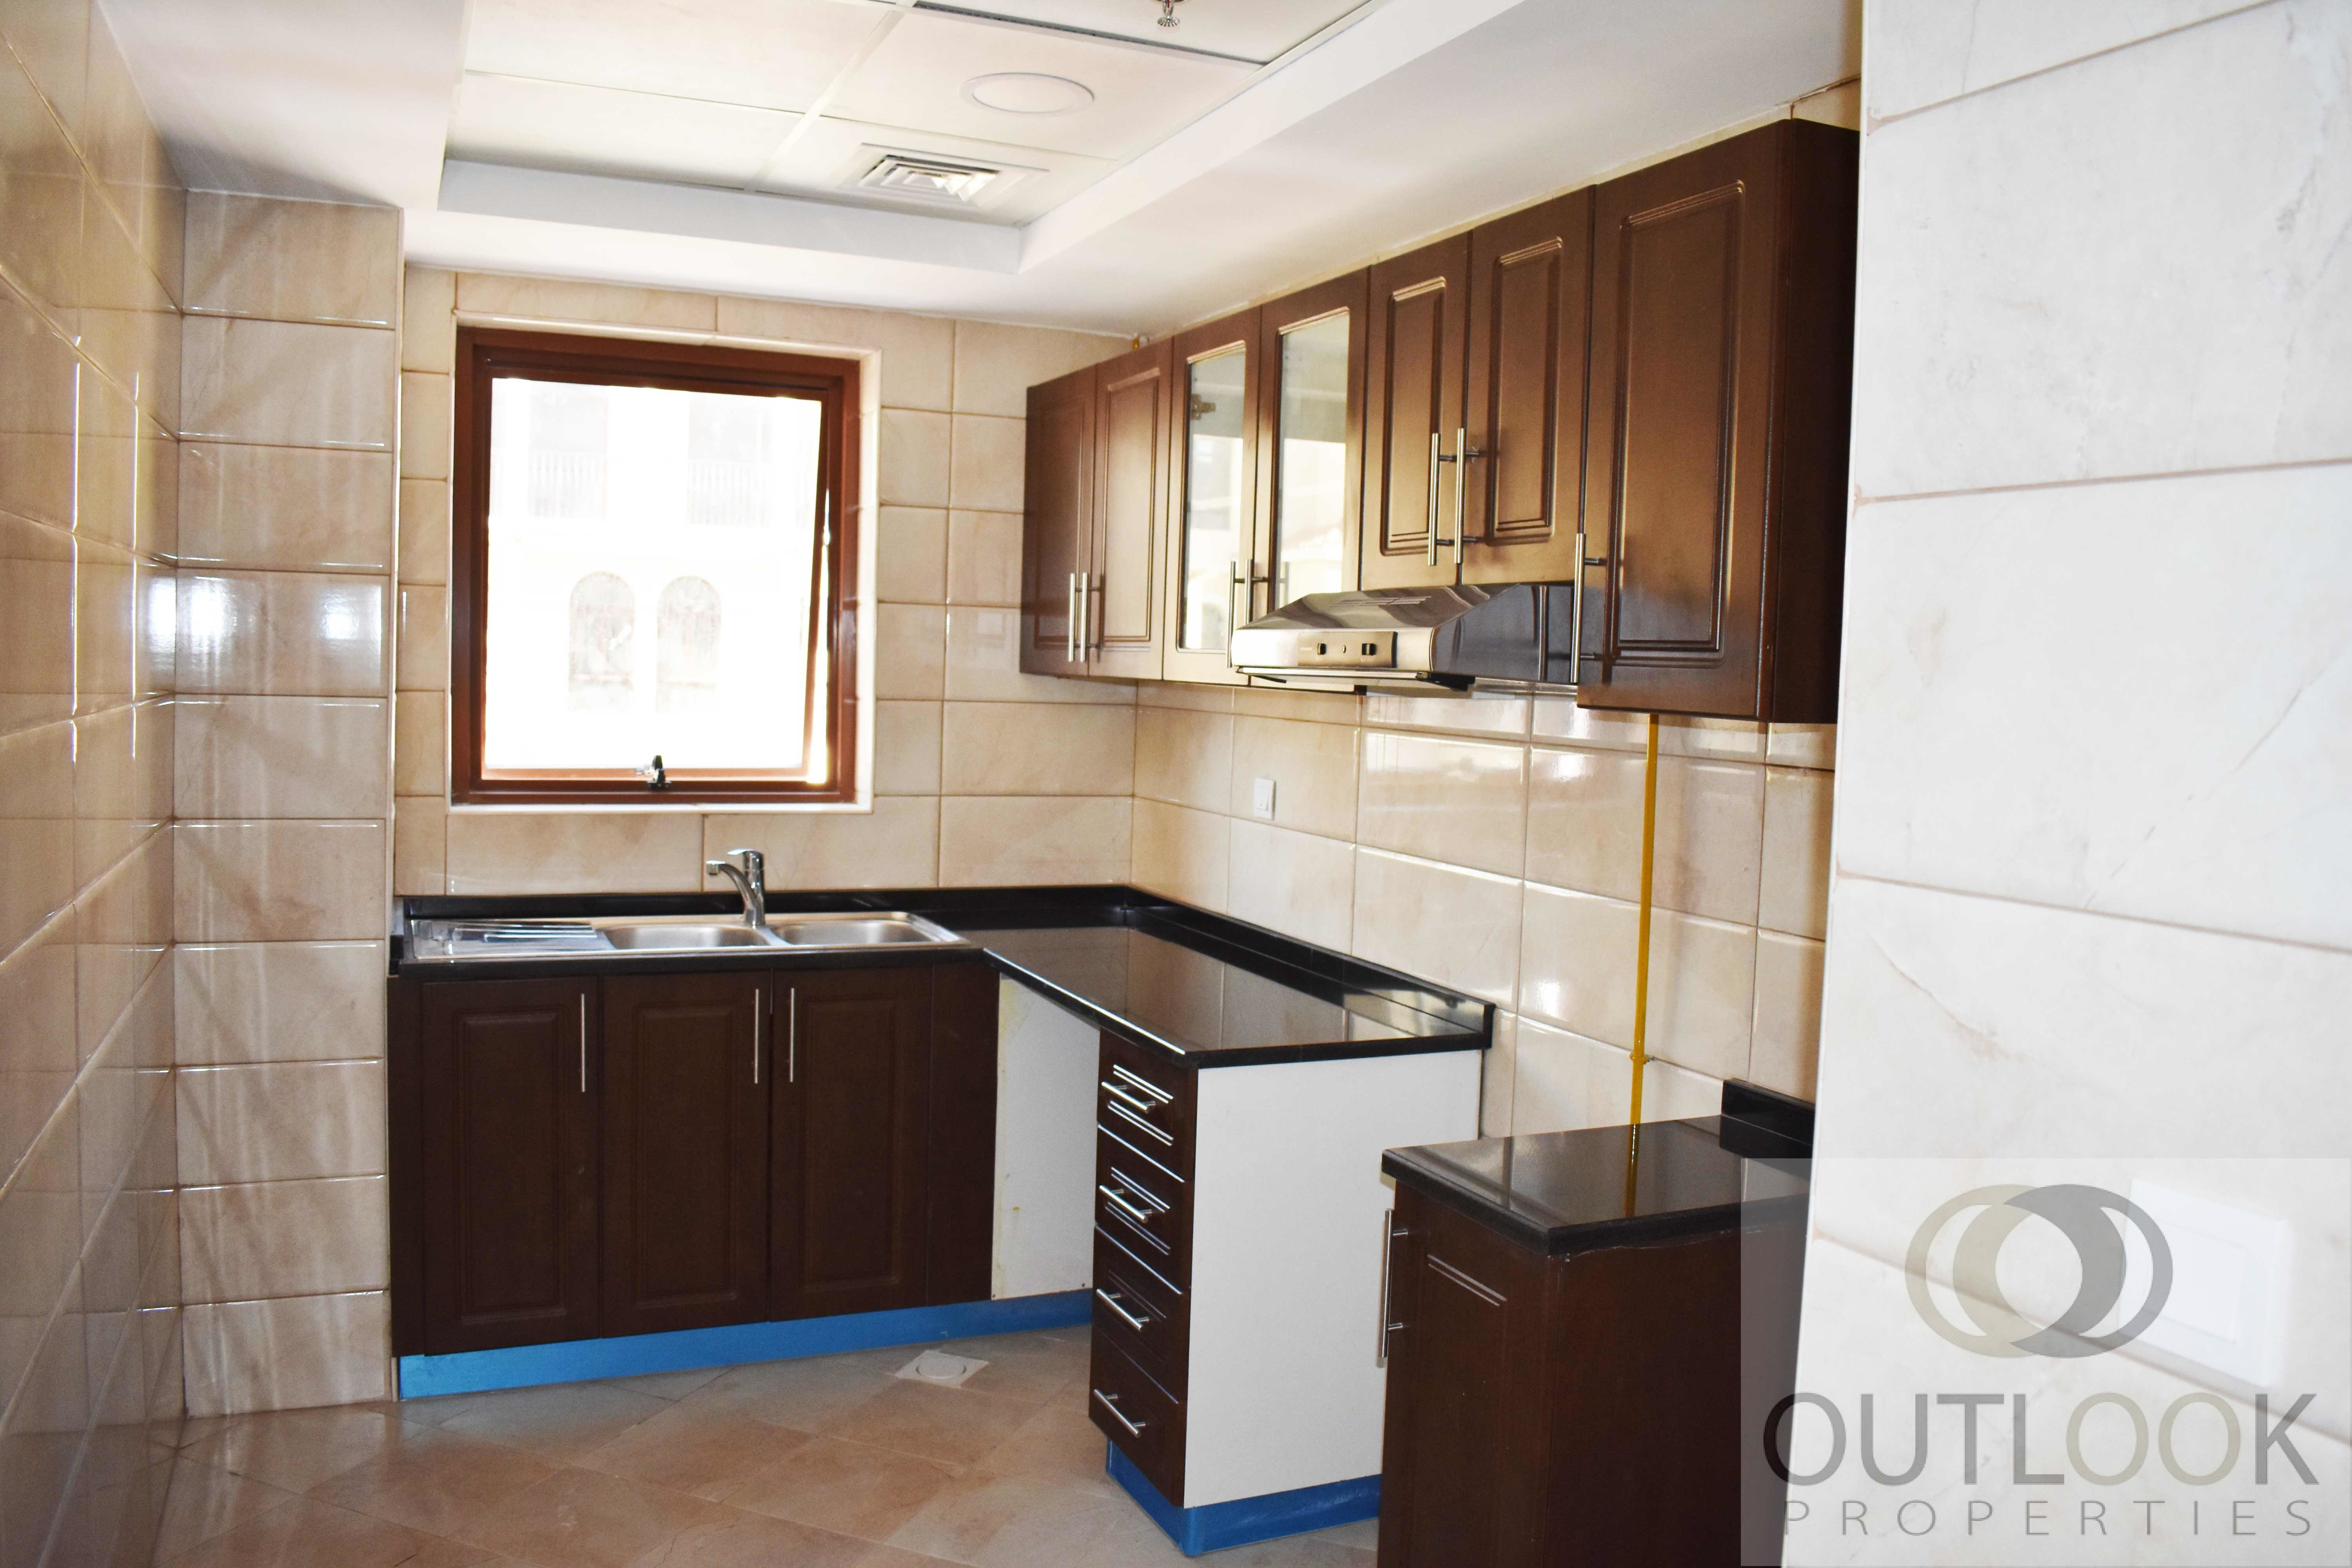 Rrs 1203 one bedroom two bathroom apartment to rent in jumeirah village circle jvc dubai for 1 bedroom flat to rent in bath